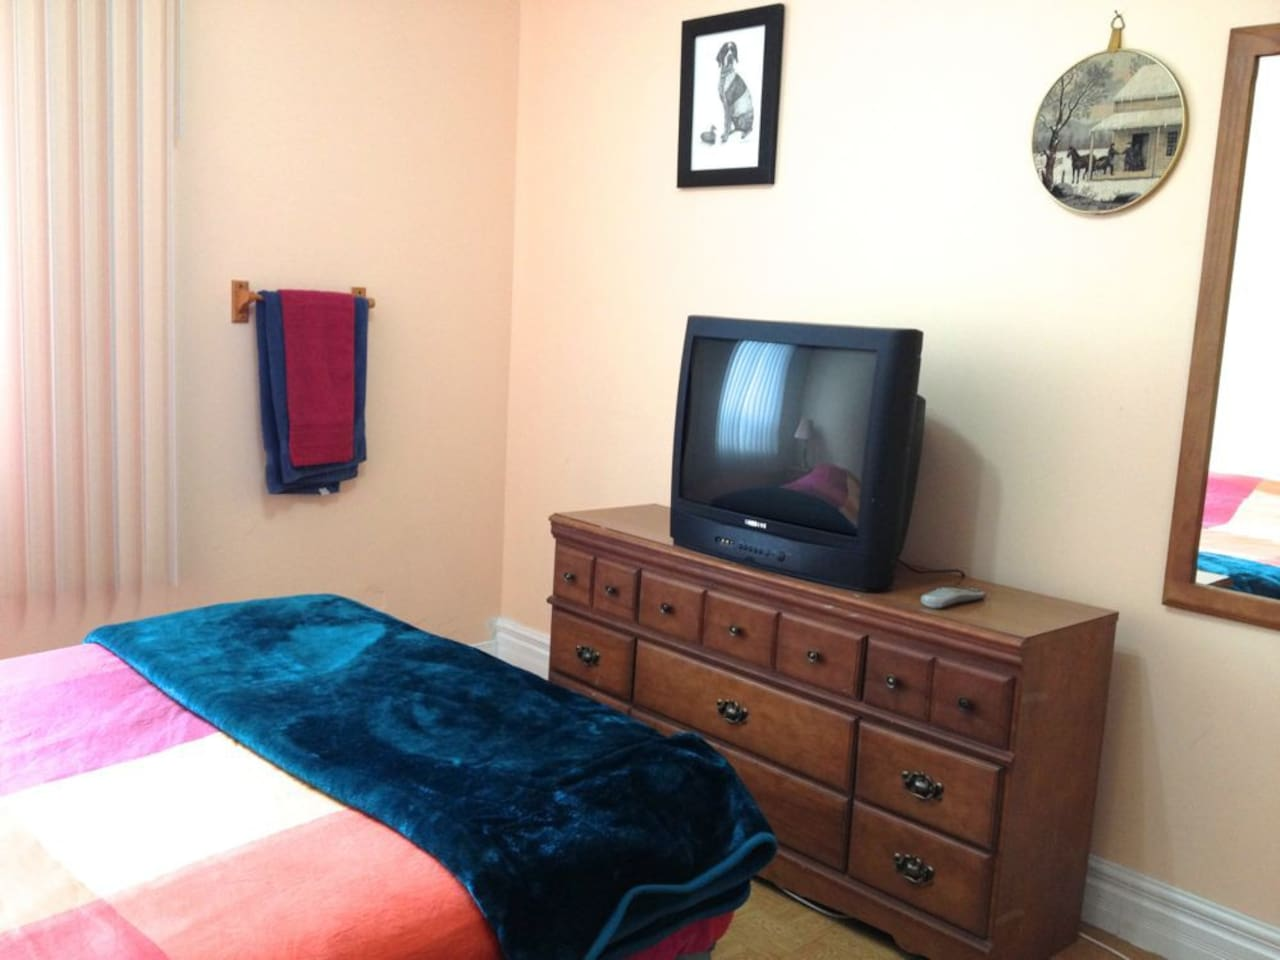 La chambre et sa vieille TV - The room and its old TV!